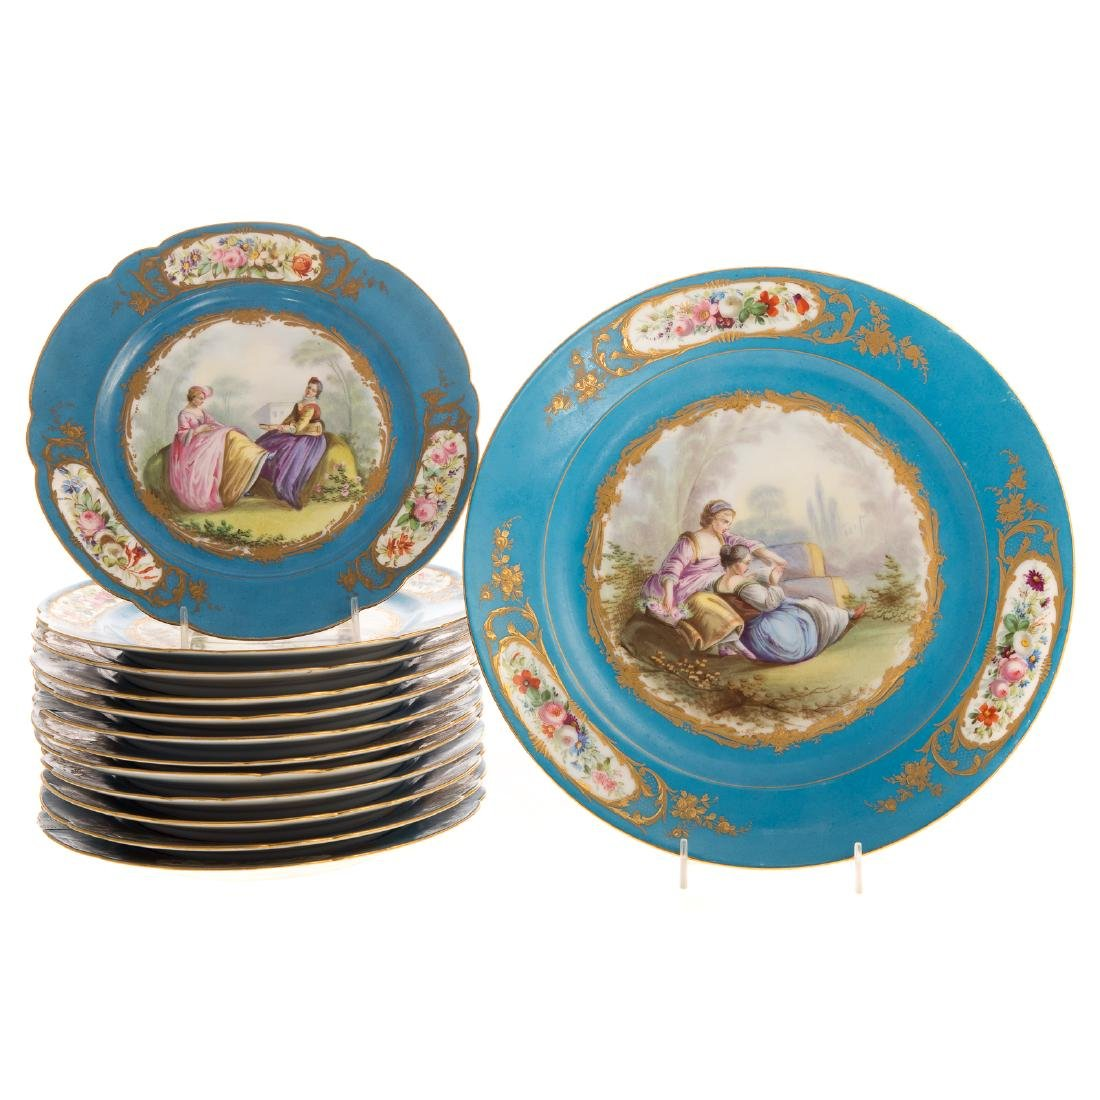 12 Sevres porcelain plates and charger